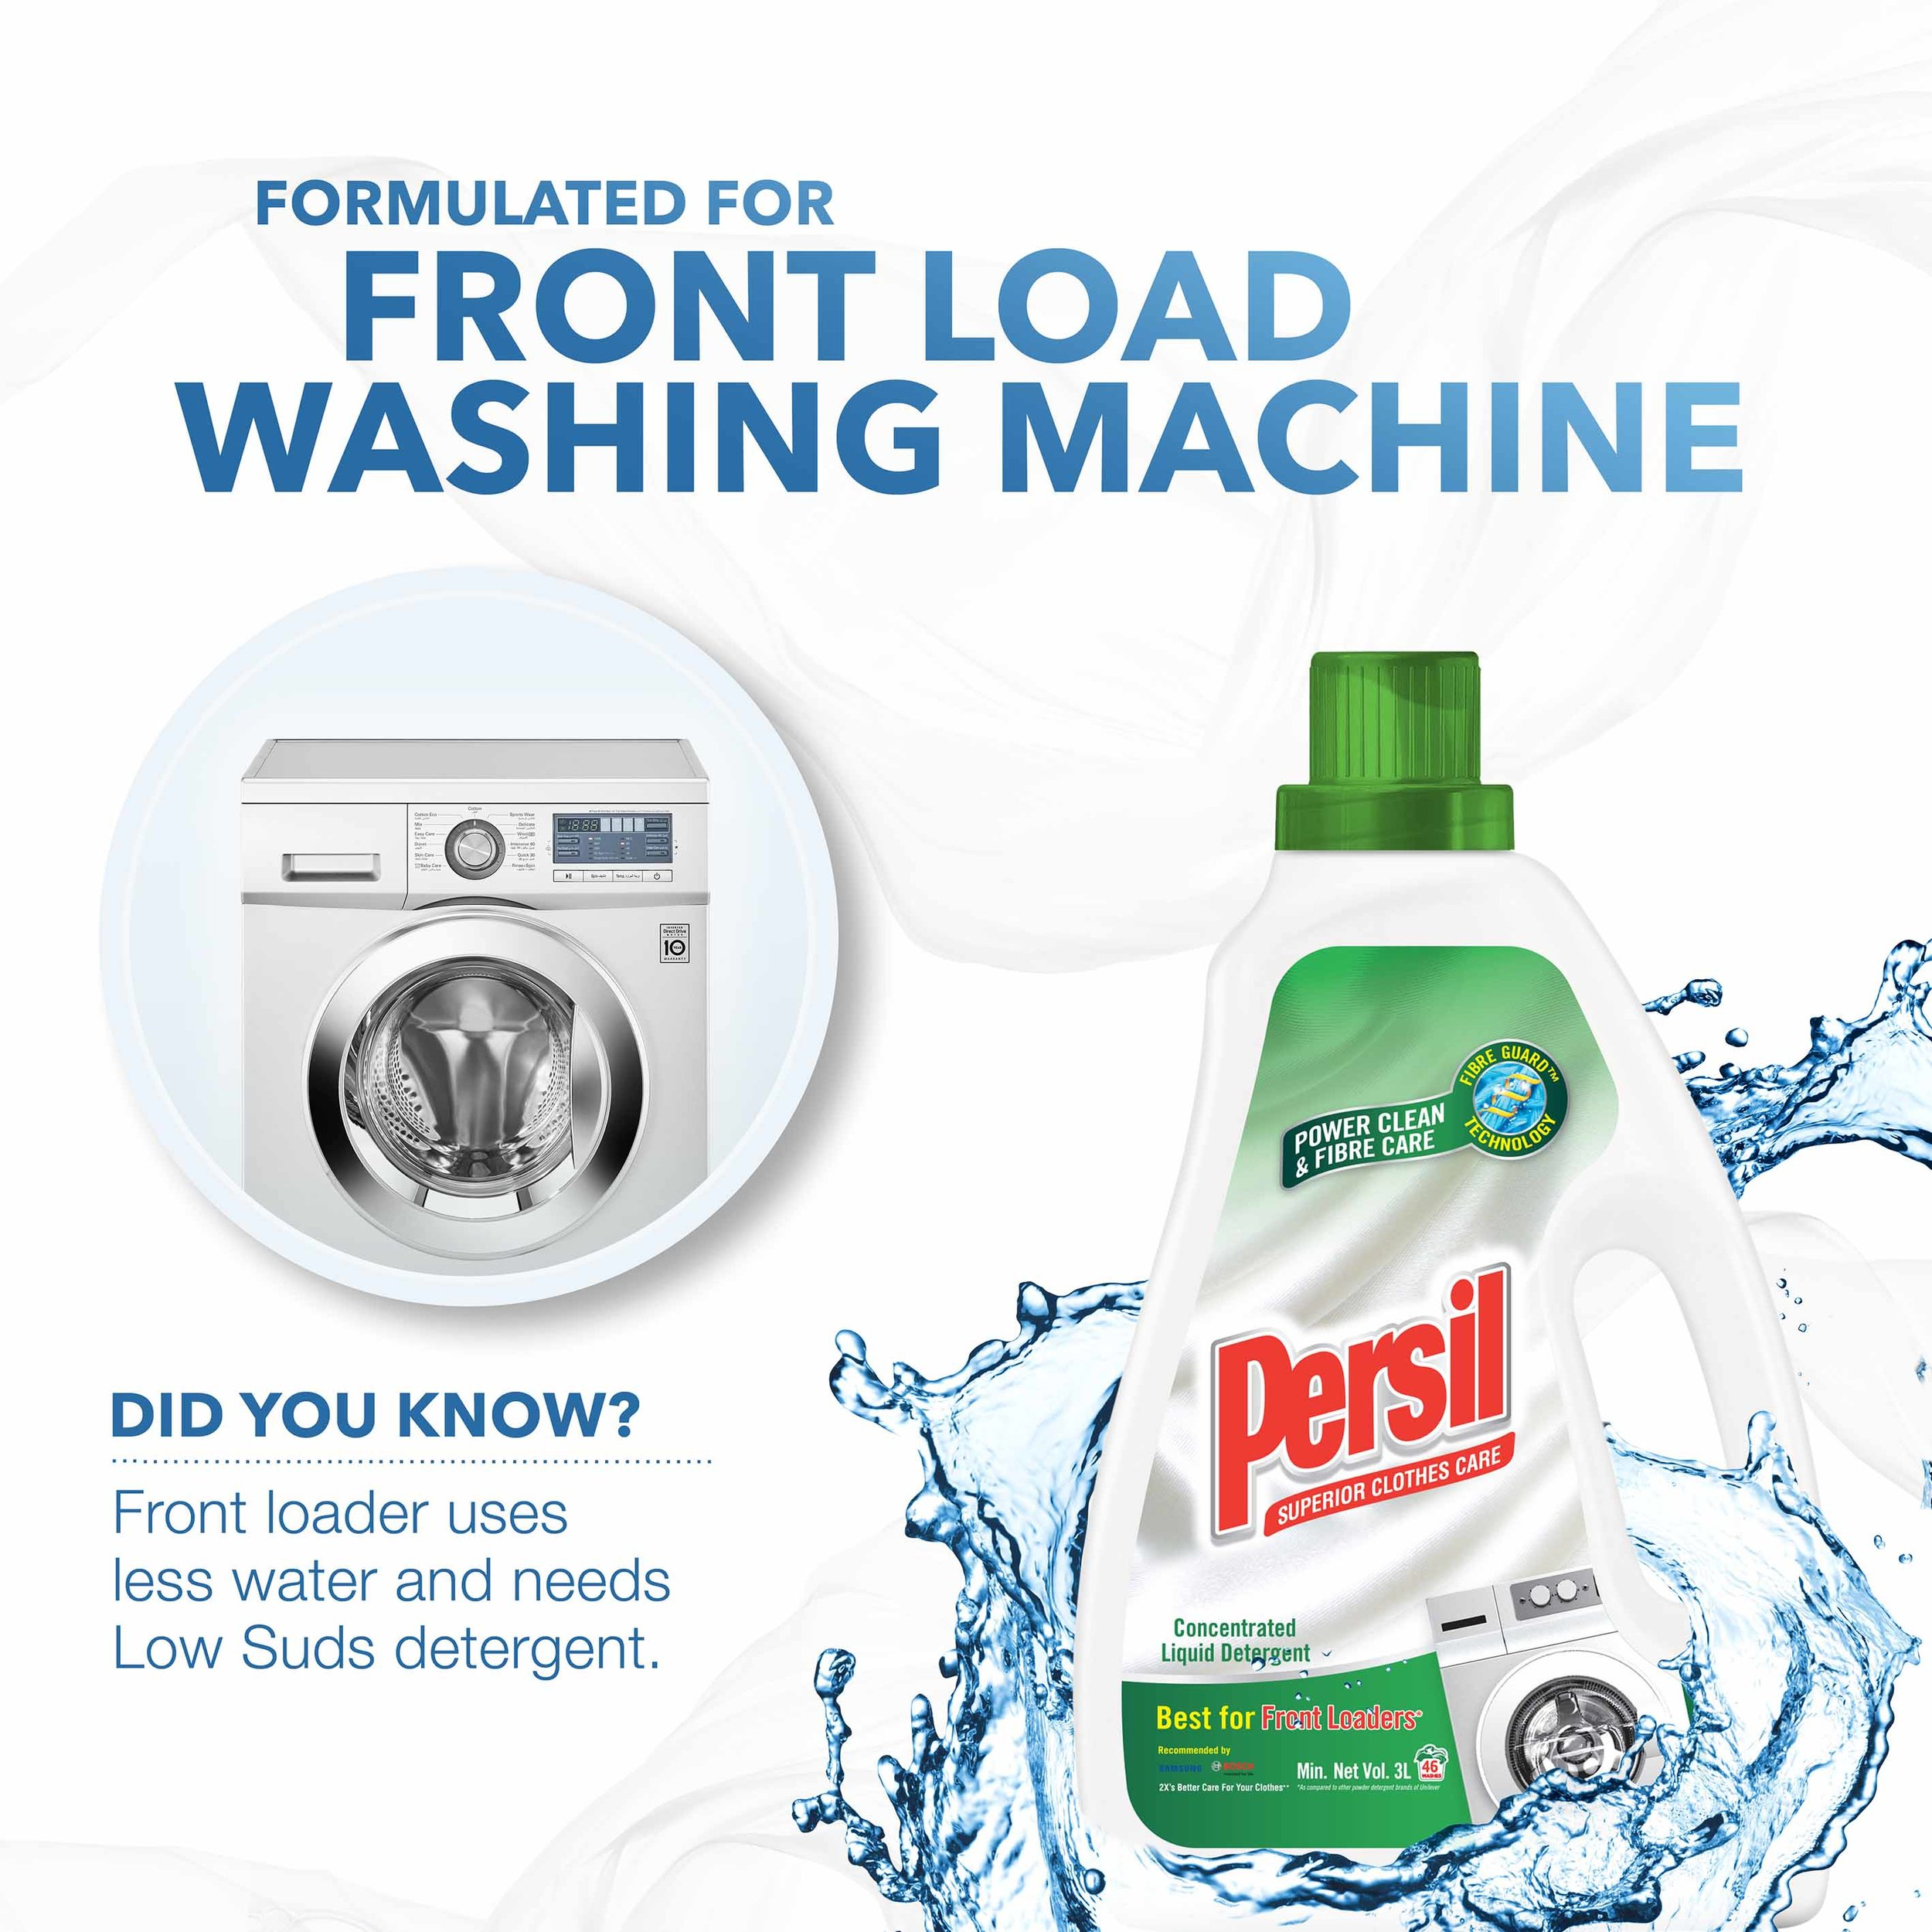 - The tumble-cleaning actions of front load washing machines are different from top load machines. Using detergents that produce too much suds (foam) can damage your front loaders because the excess lather may wash away the motor oil on ts bearing, resulting in costly repairs. That's why Persil low suds detergent is best recommended for front load washing machines.